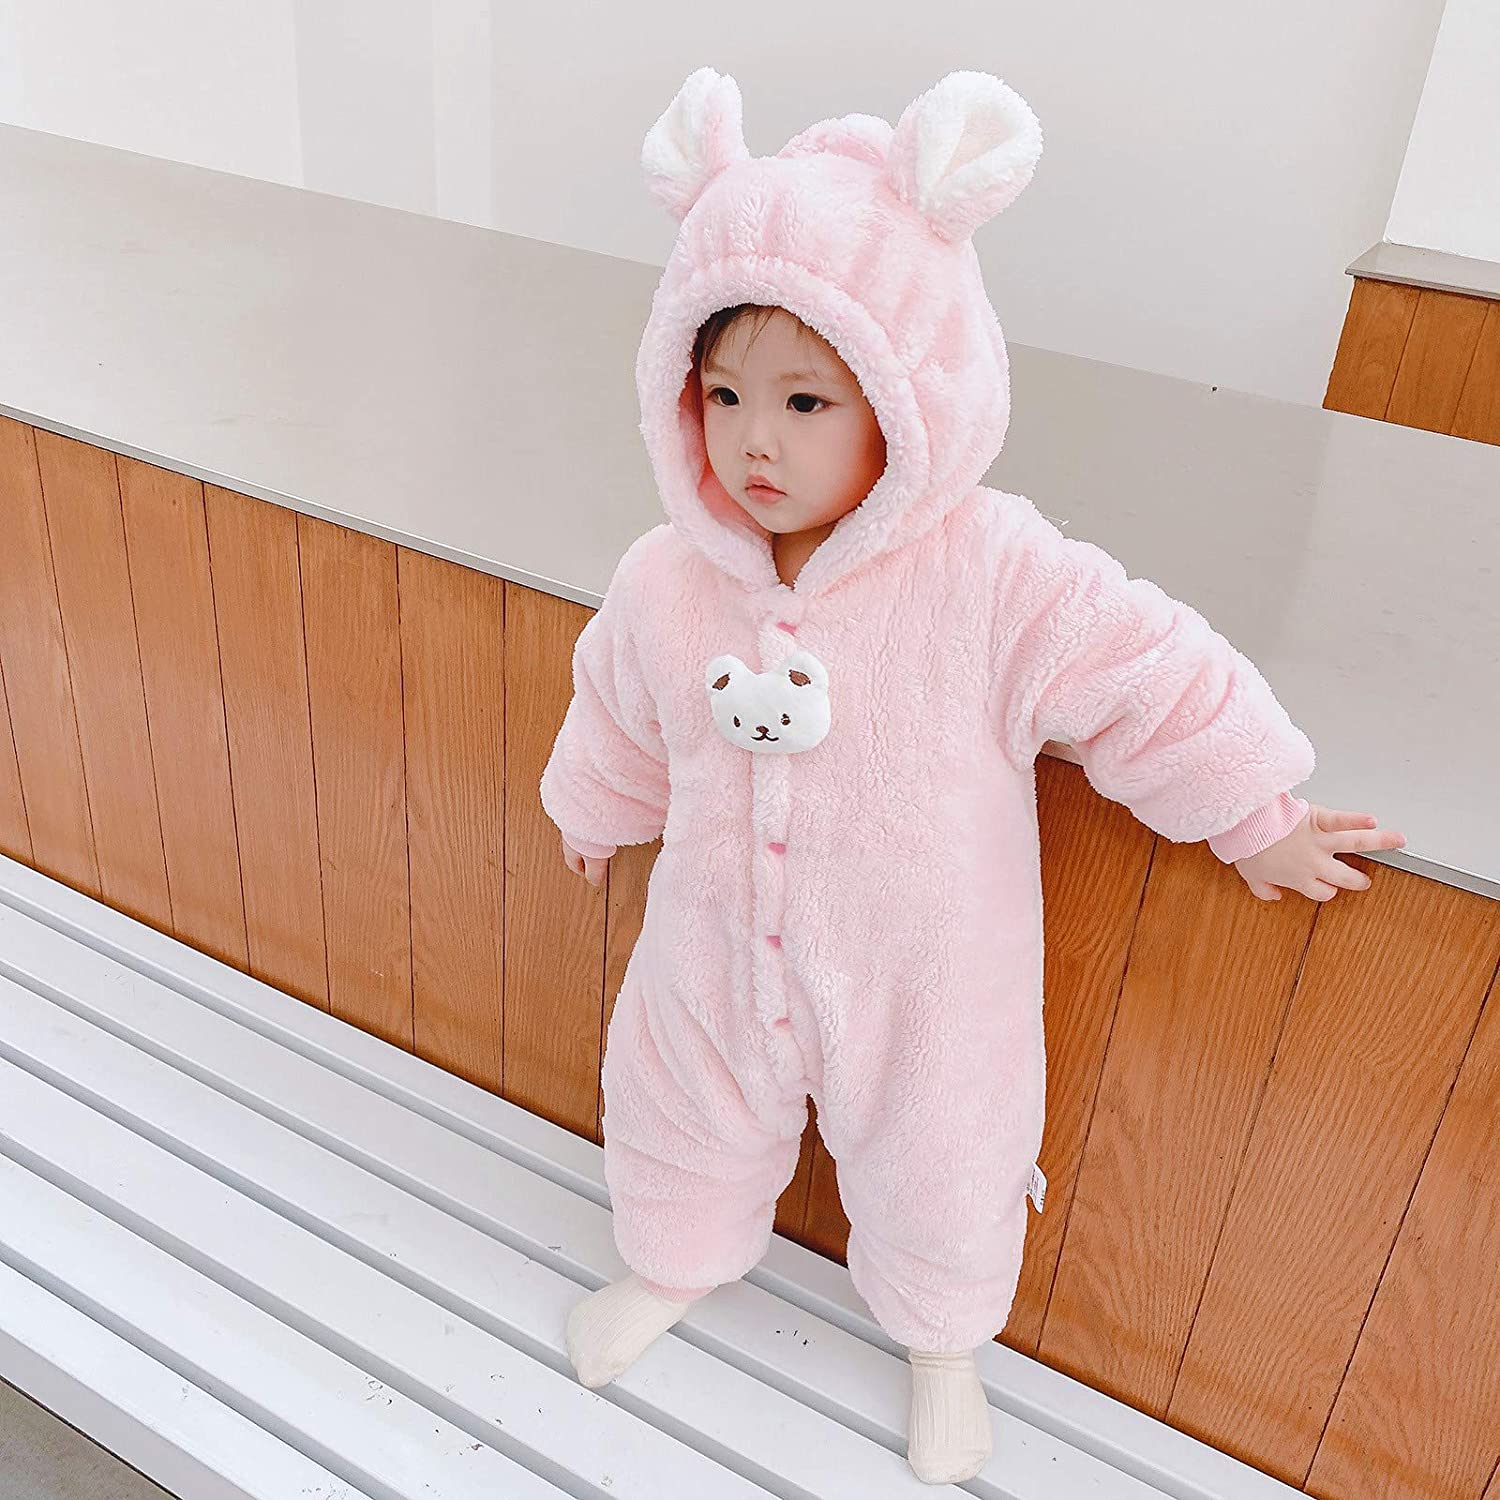 Weilov 1-12Y Big Kids Girls Long-Sleeved Striped Printed Hooded Sweater Top Skirt Pullover Sweater Various Patterns Cute Patterns Colorful